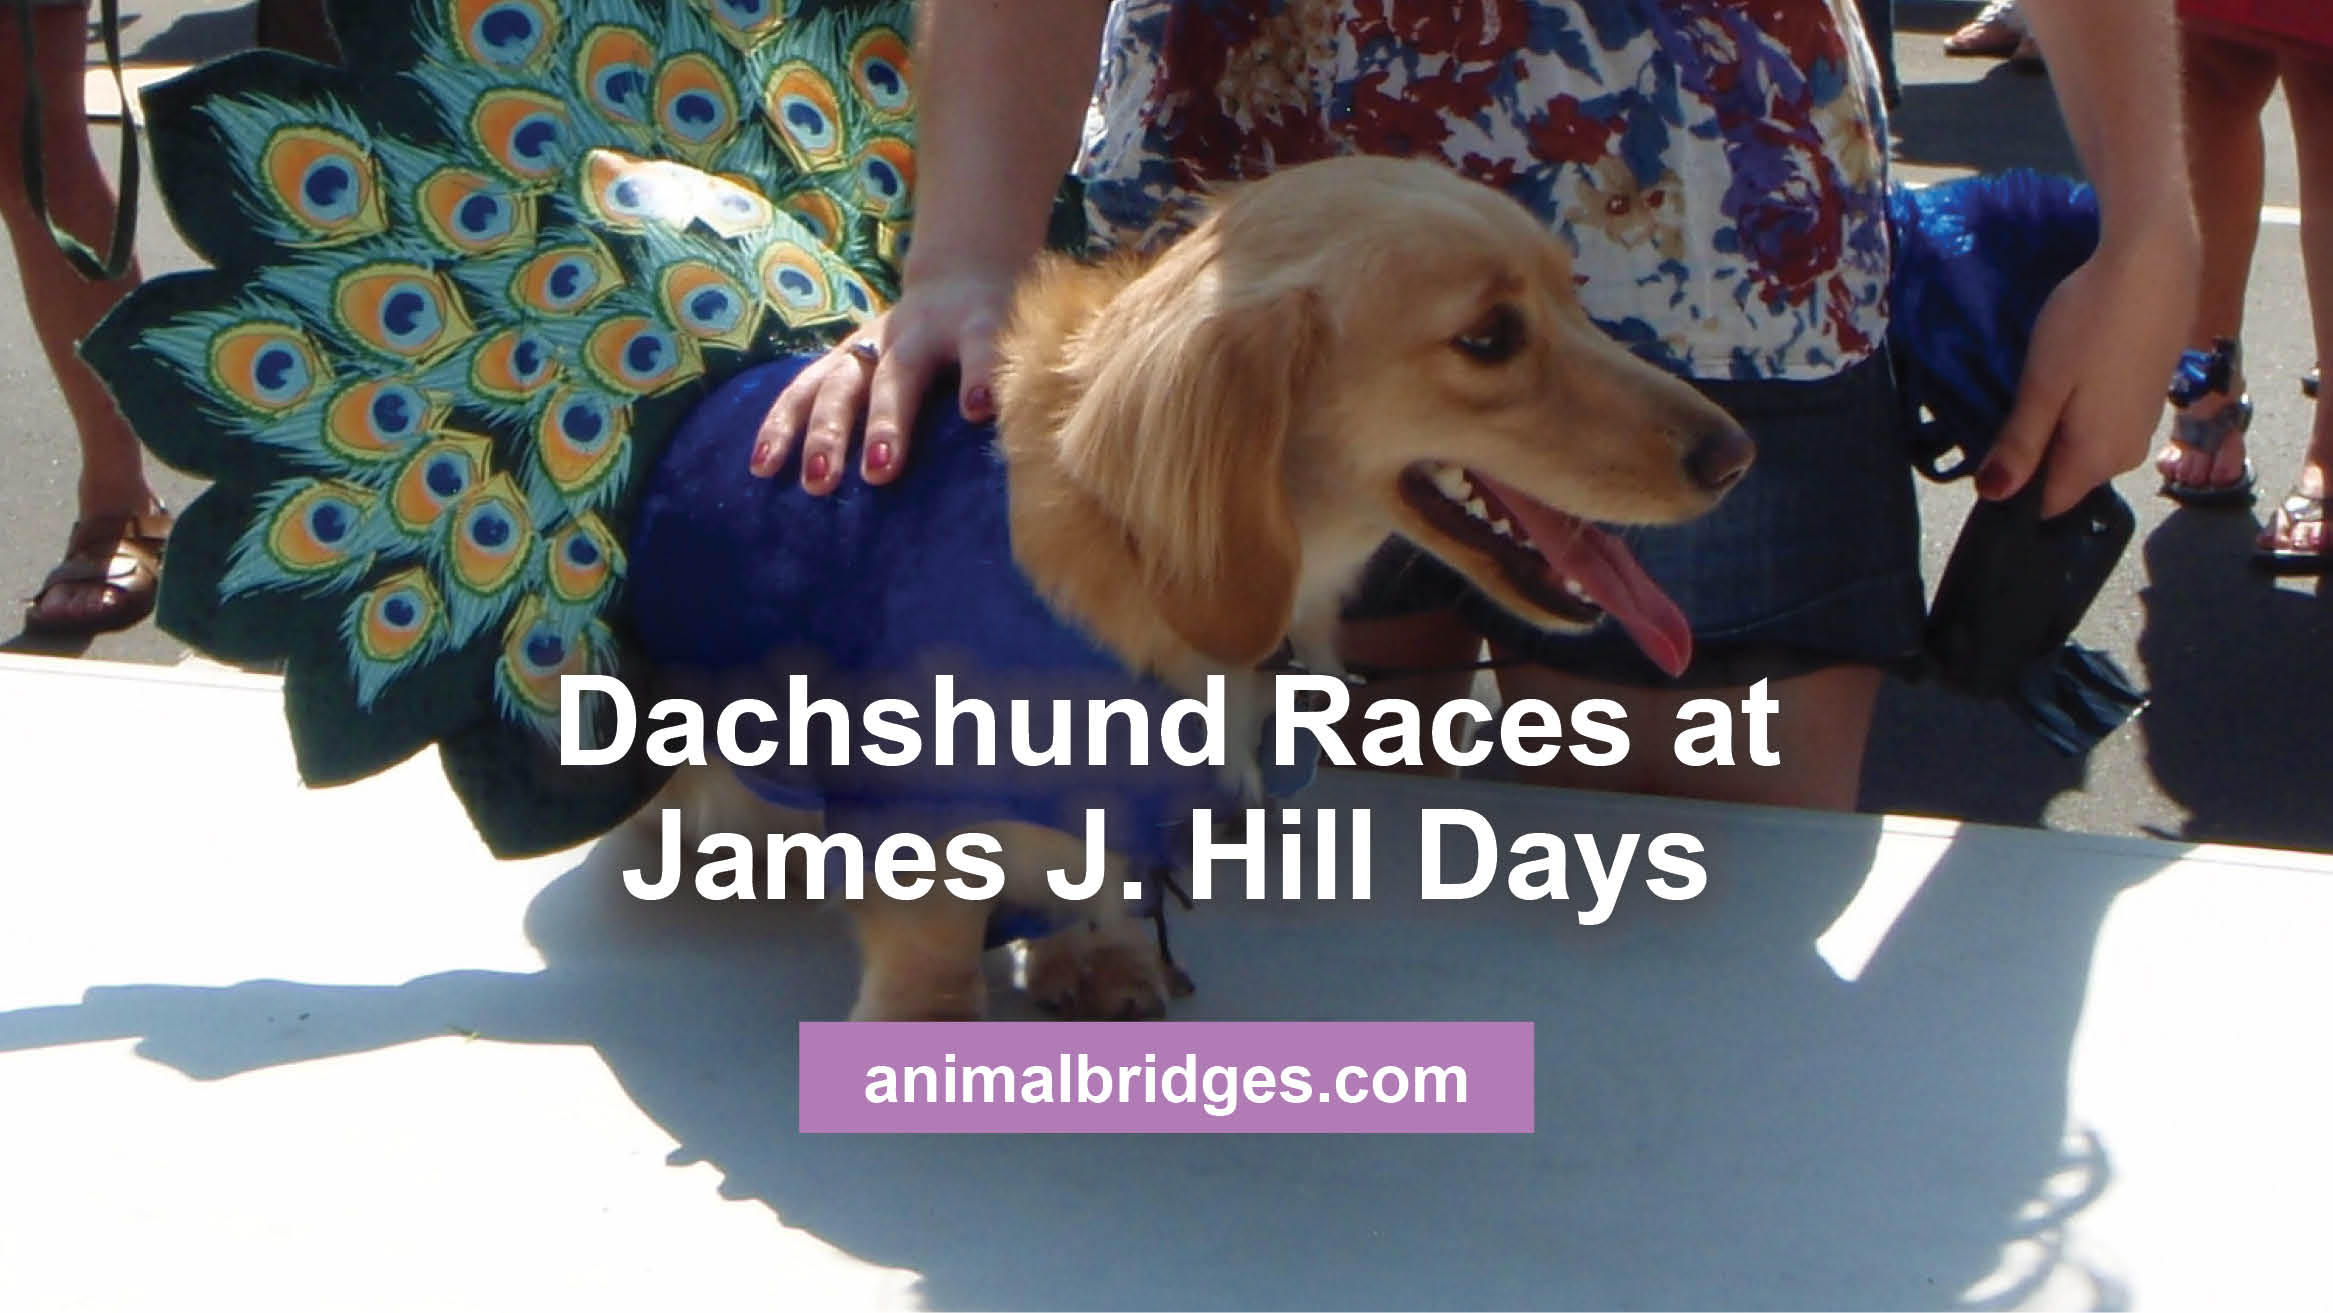 Dachshund Races at James J. Hill Days 2013 in Wayzata, MN